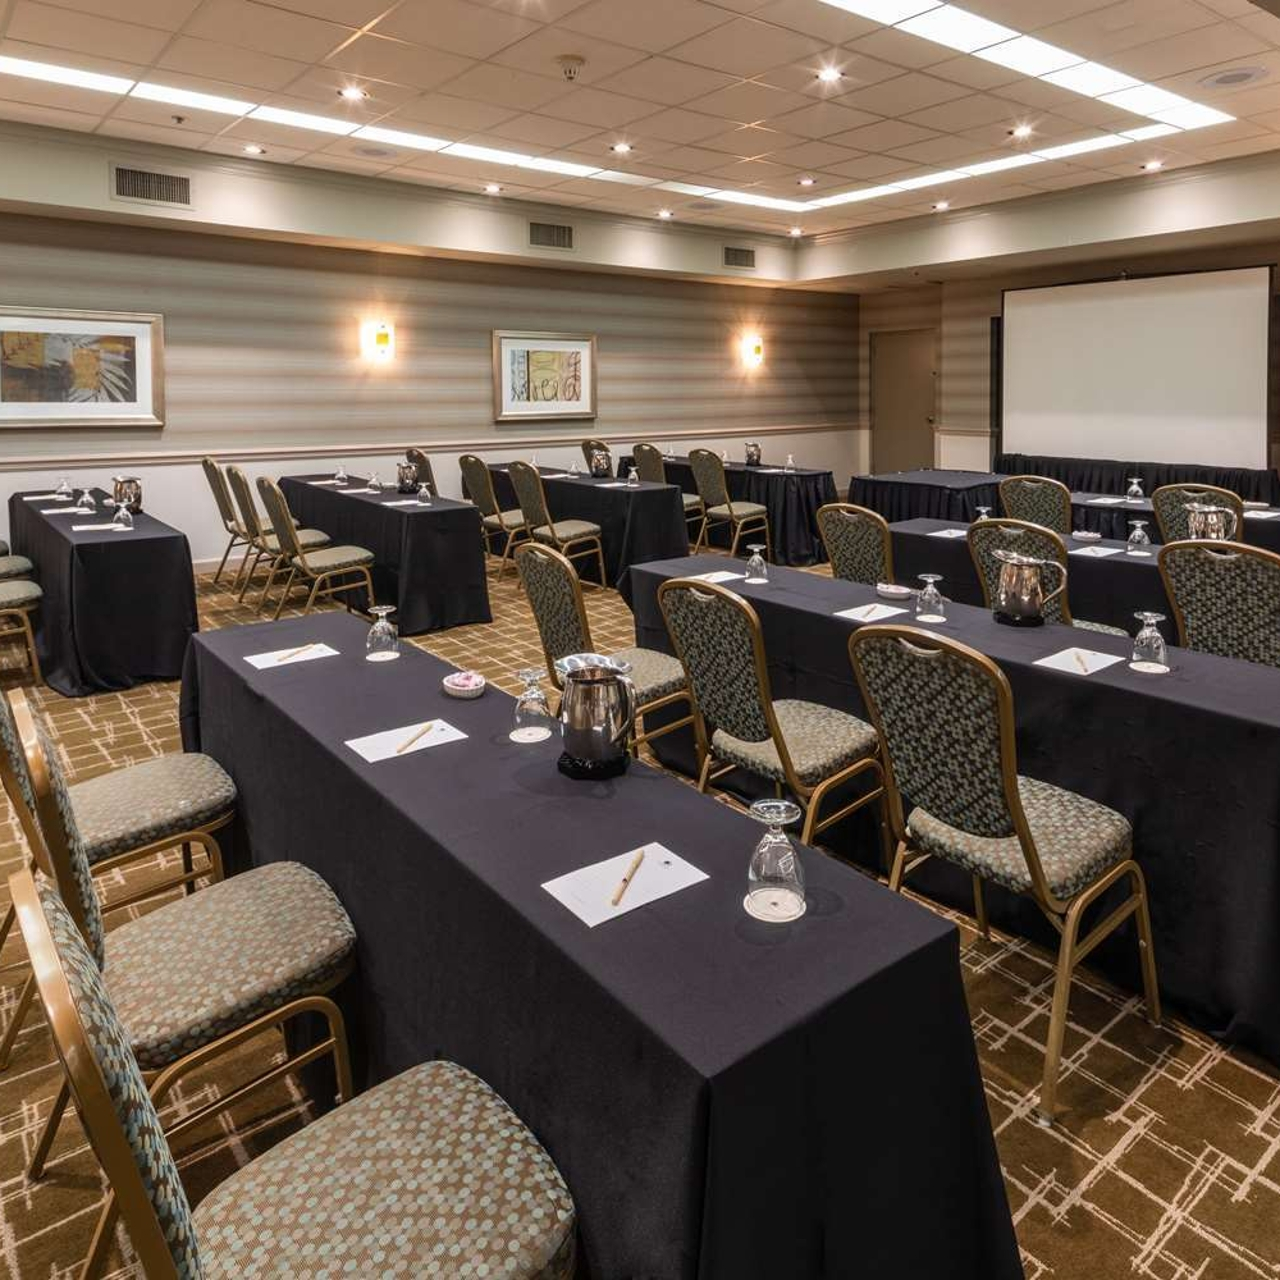 Doubletree By Hilton Grand Hotel Biscayne Bay Miami Florida At Hrs With Free Services